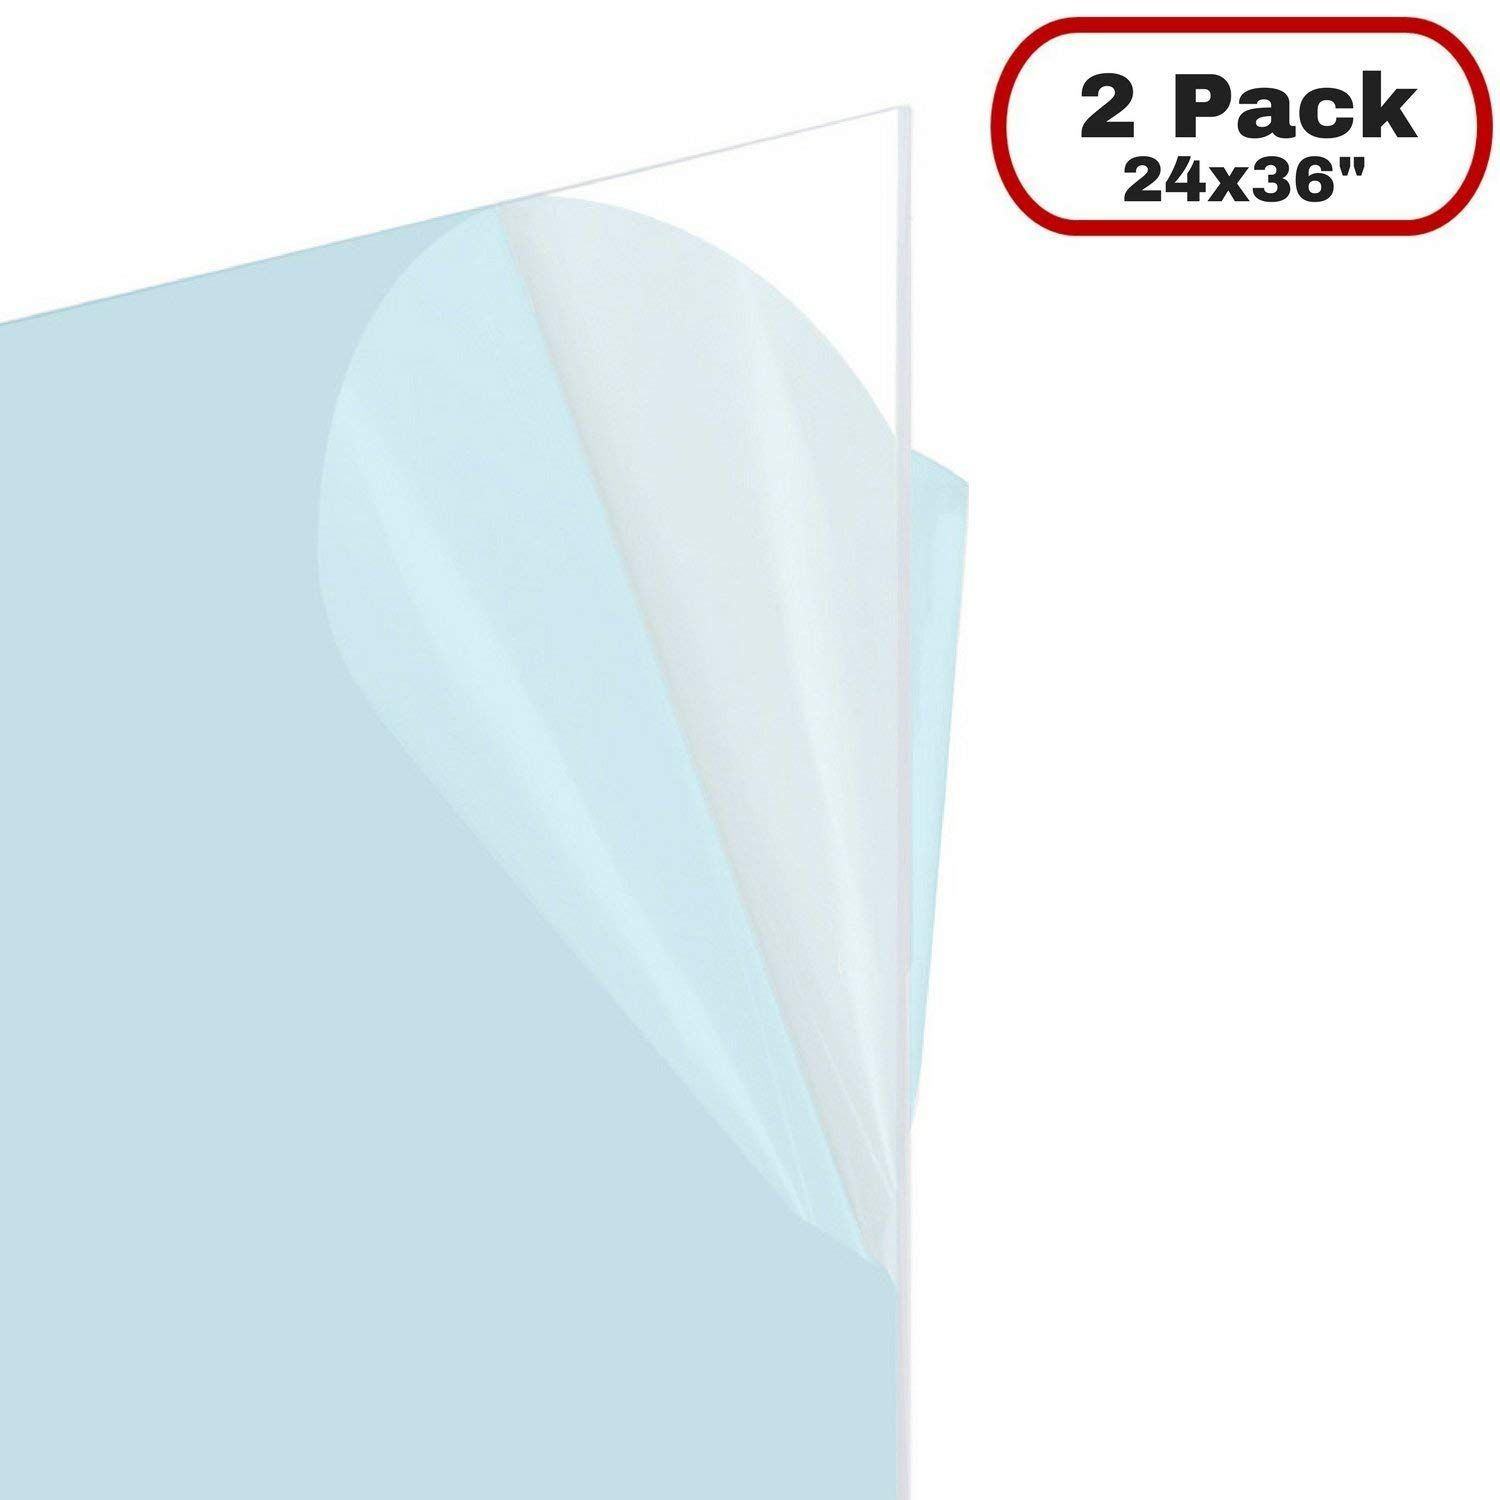 Amazon Com Icona Bay Flexible Clear Plastic Sheet 24x36 Inch 2 Pack 0 03 Thick Multi Purpose Pet Polyethyle Document Frame Poster Frame Glass Material